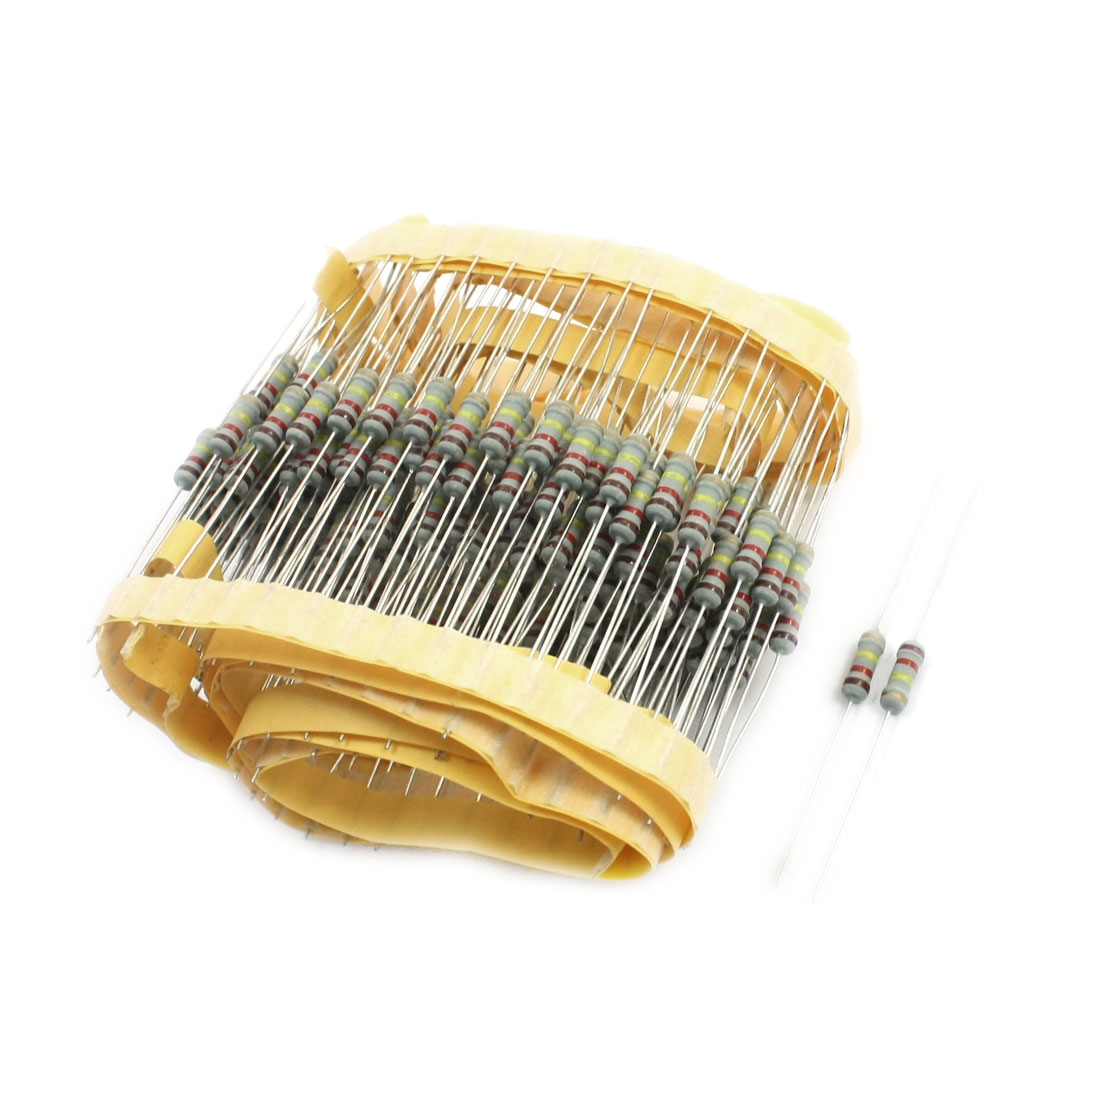 200Pcs 1/2W Power 120K Ohm 5% Tolerance Axial Lead Type Through Hole Mounting 4 Color Ring Carbon Film Fixed Resistors